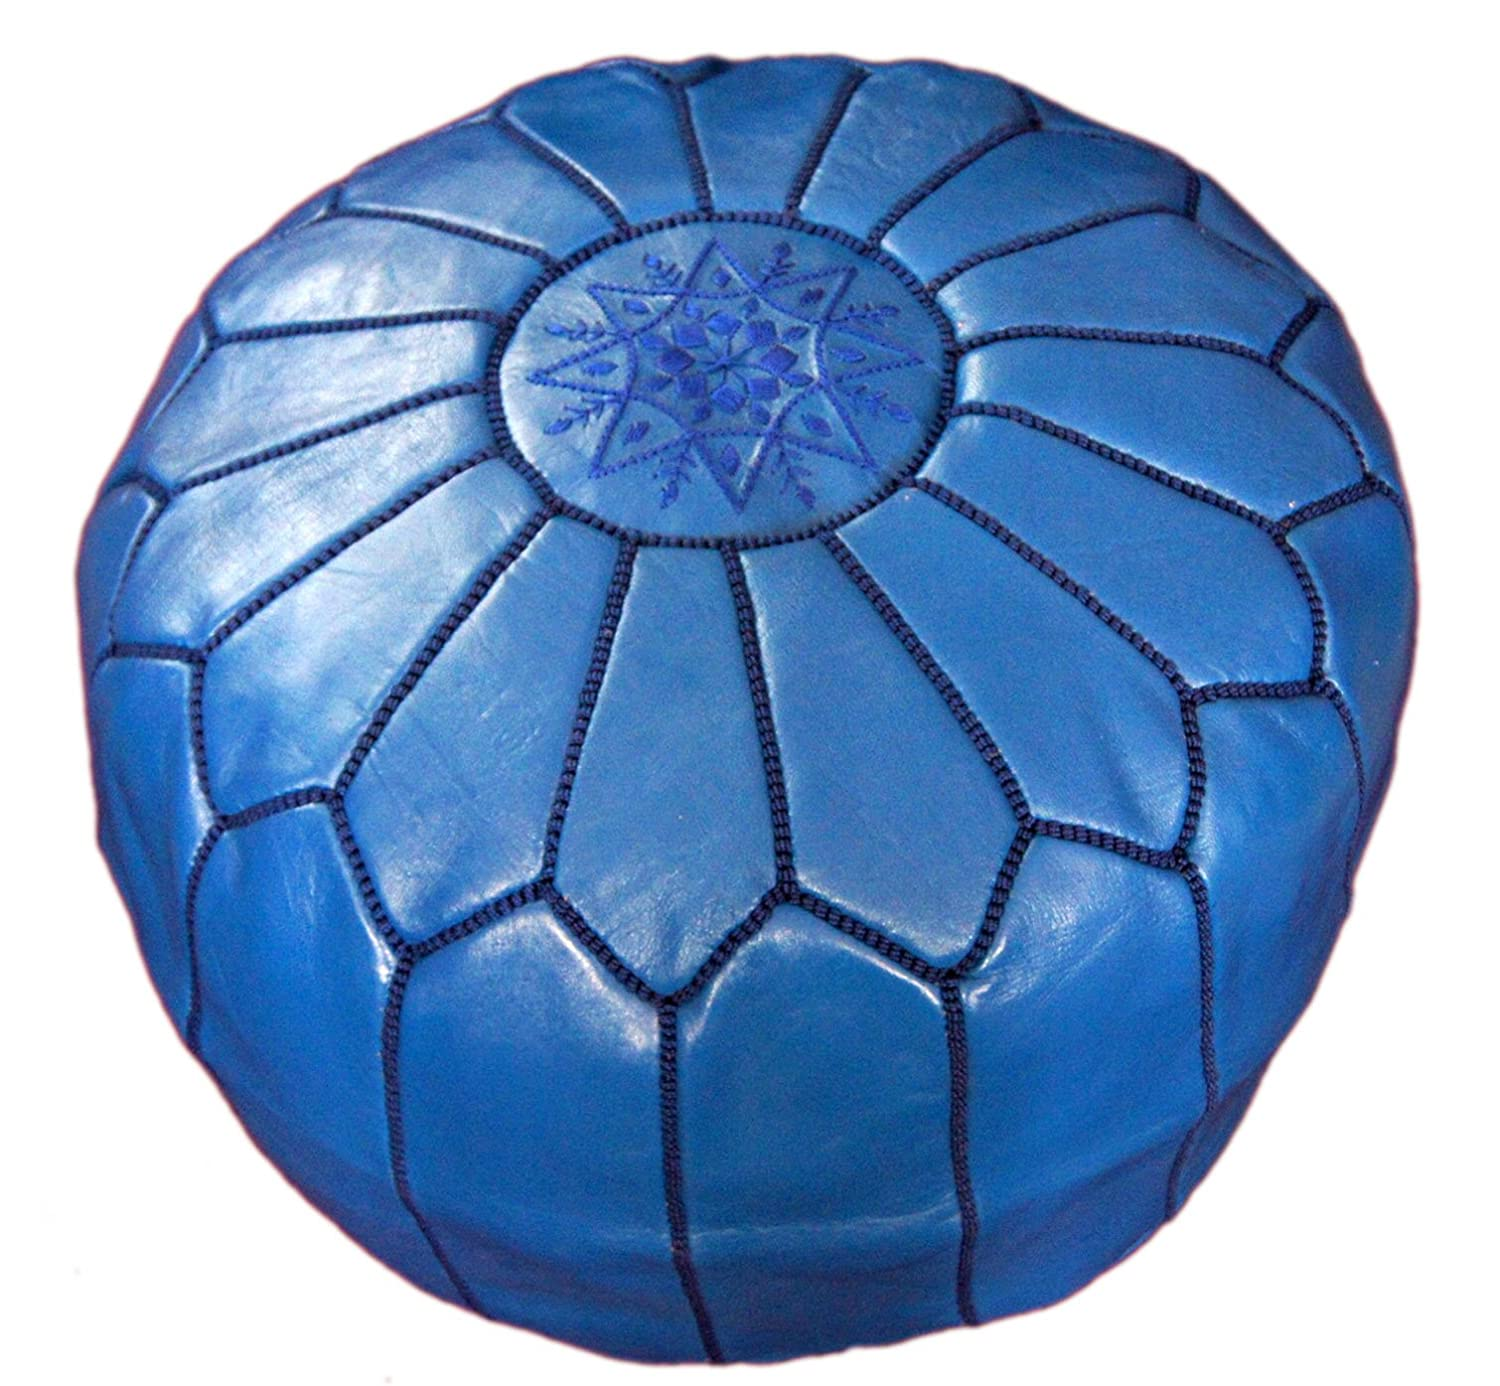 Moroccan Hand Made Pouf Leather Luxury Ottomans Footstools Cover High Quality Satifaction Guarranteed Treasures Of Morocco Large Pouf Blue